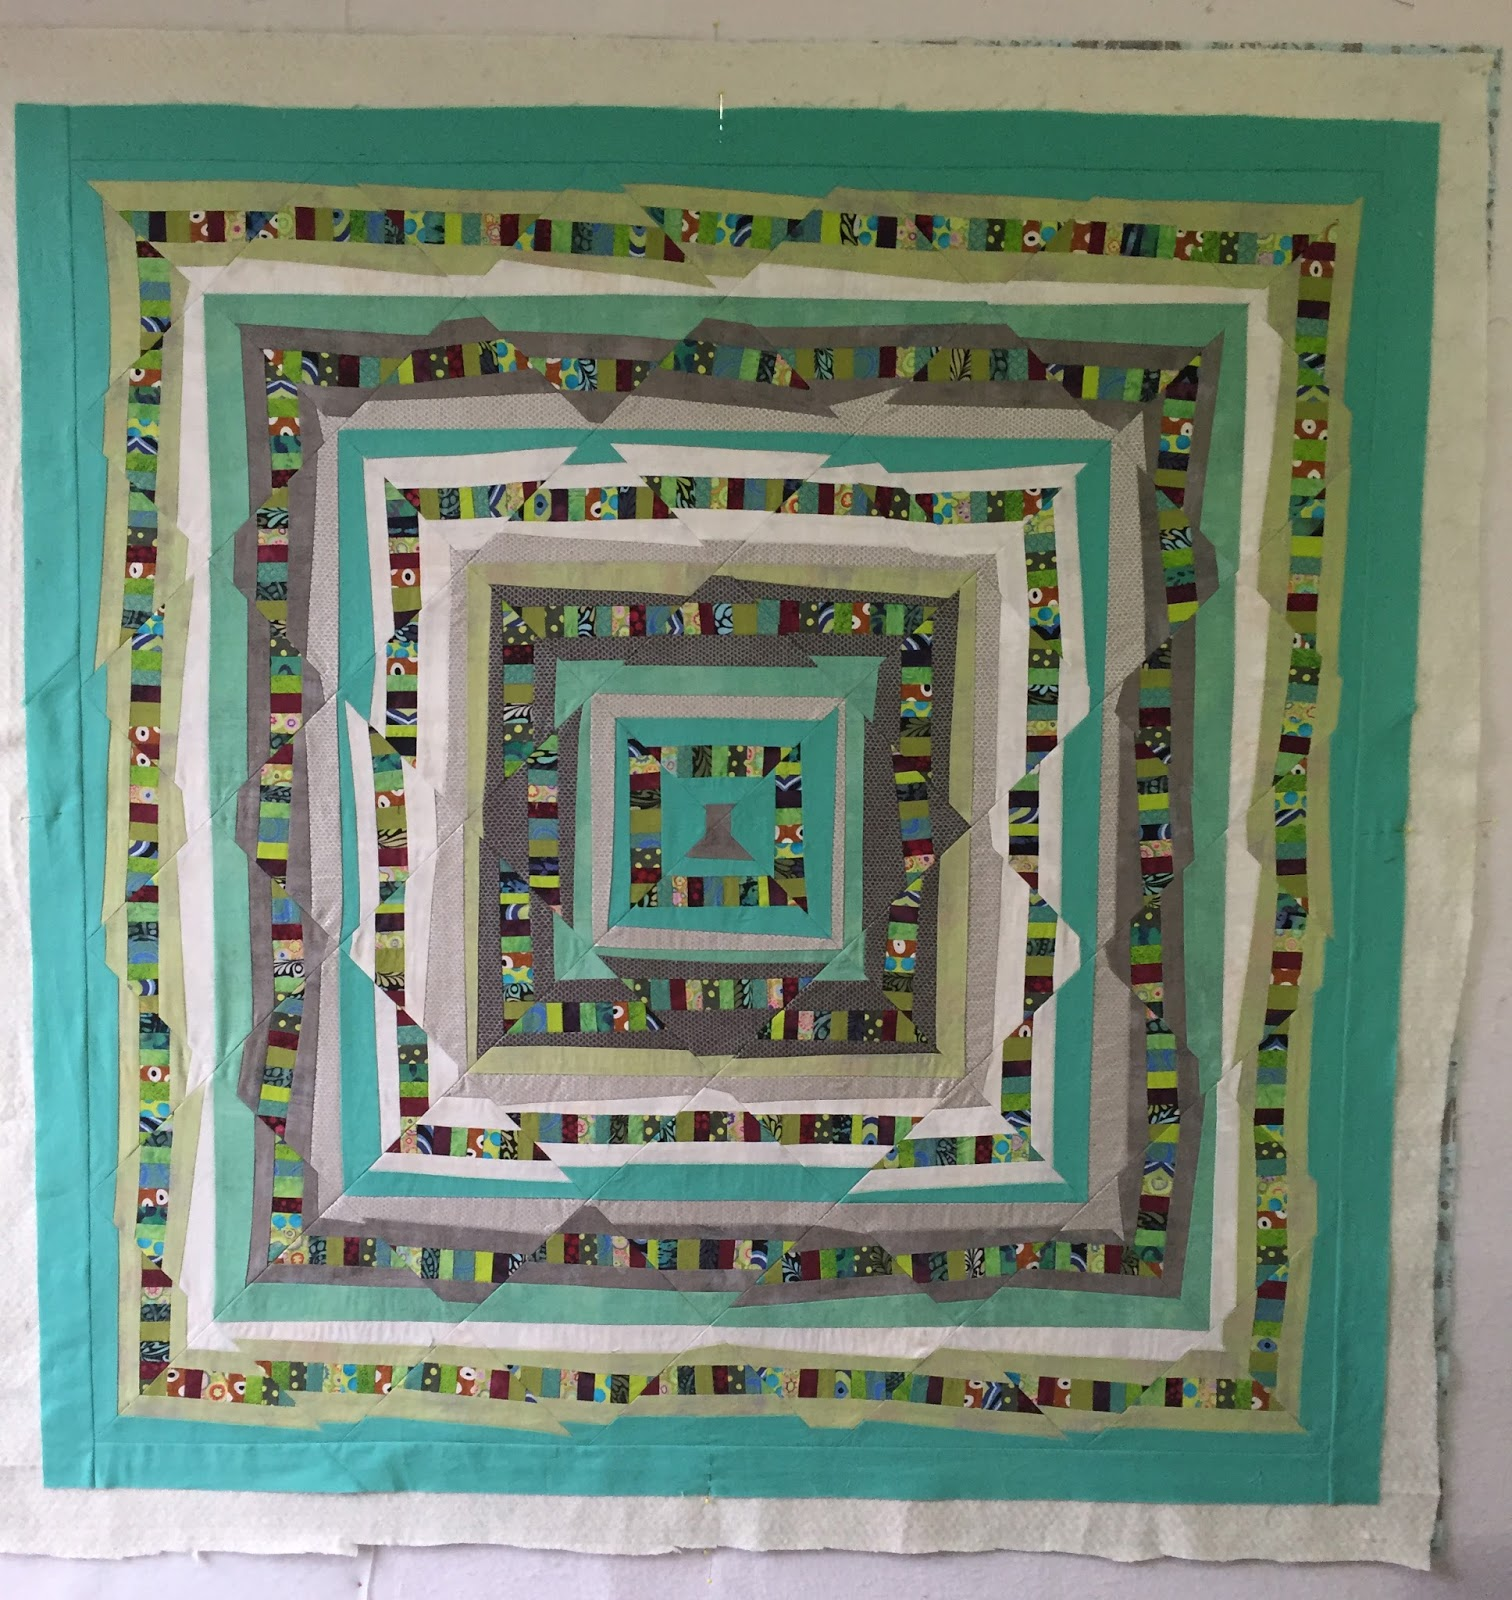 used use be the to i if orvus instructions a follow is and it soap its very means for quilts first which piece give delicate bath quilt